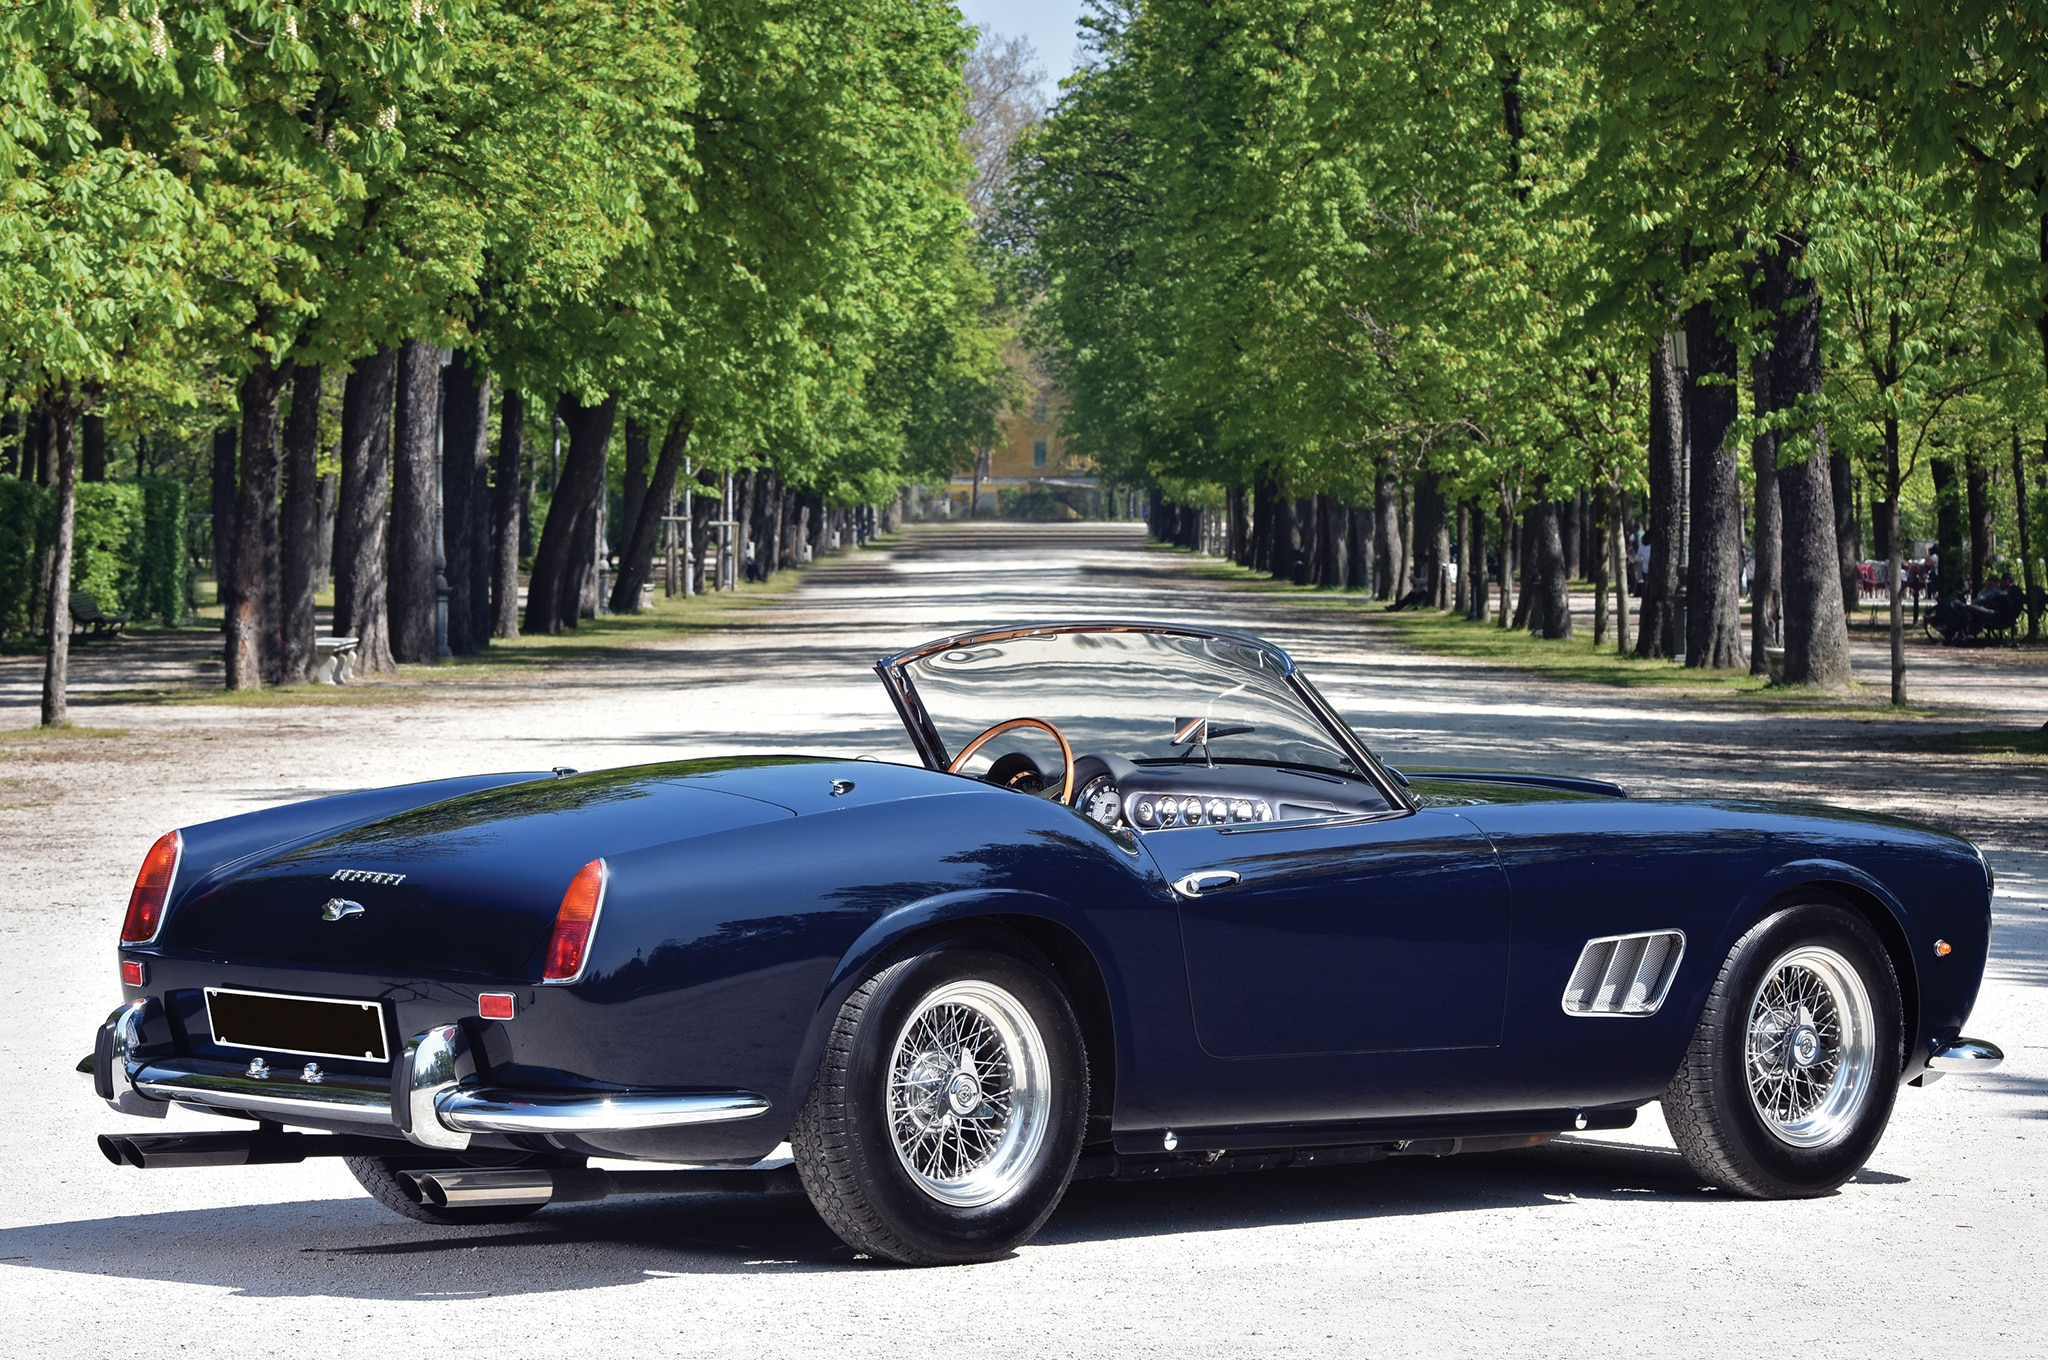 1961 ferrari 250 gt swb california spider up for grabs at villa erba. Black Bedroom Furniture Sets. Home Design Ideas